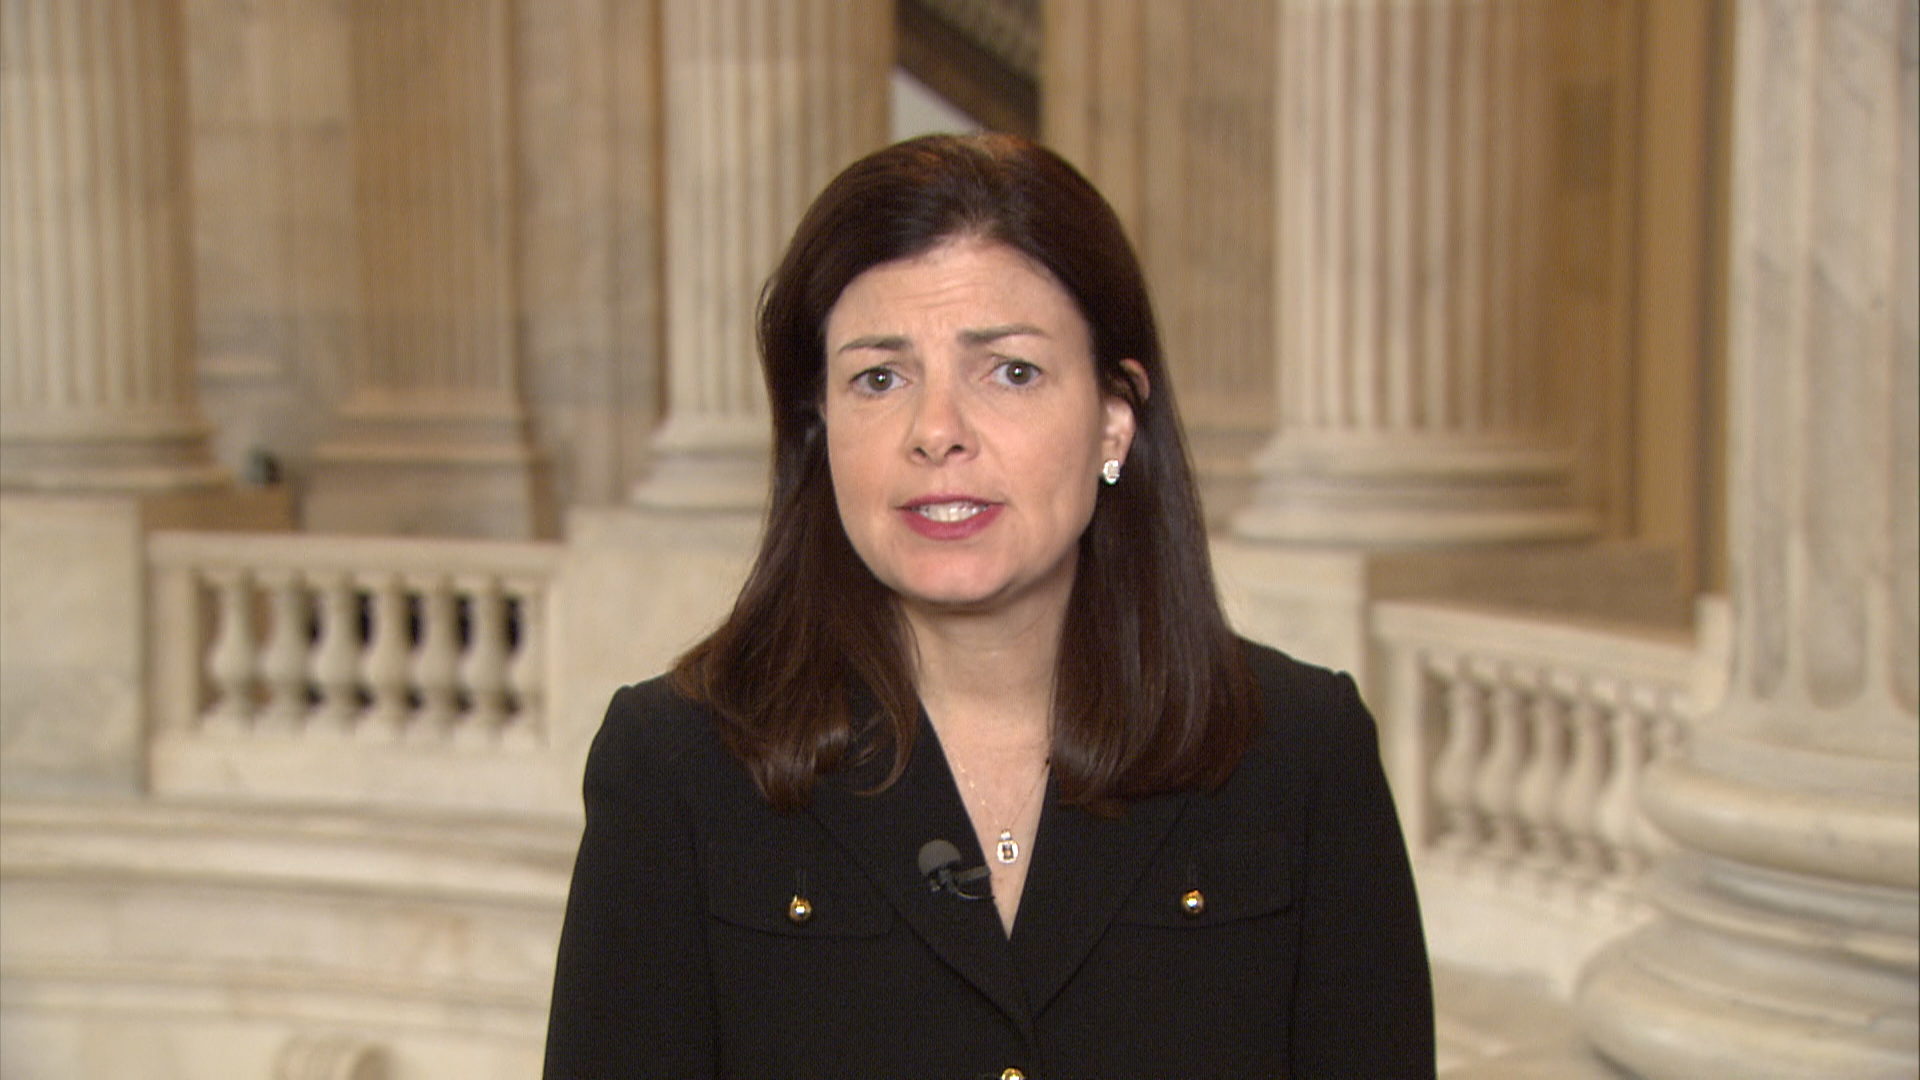 Ayotte: Kerry's comments were 'inappropriate'